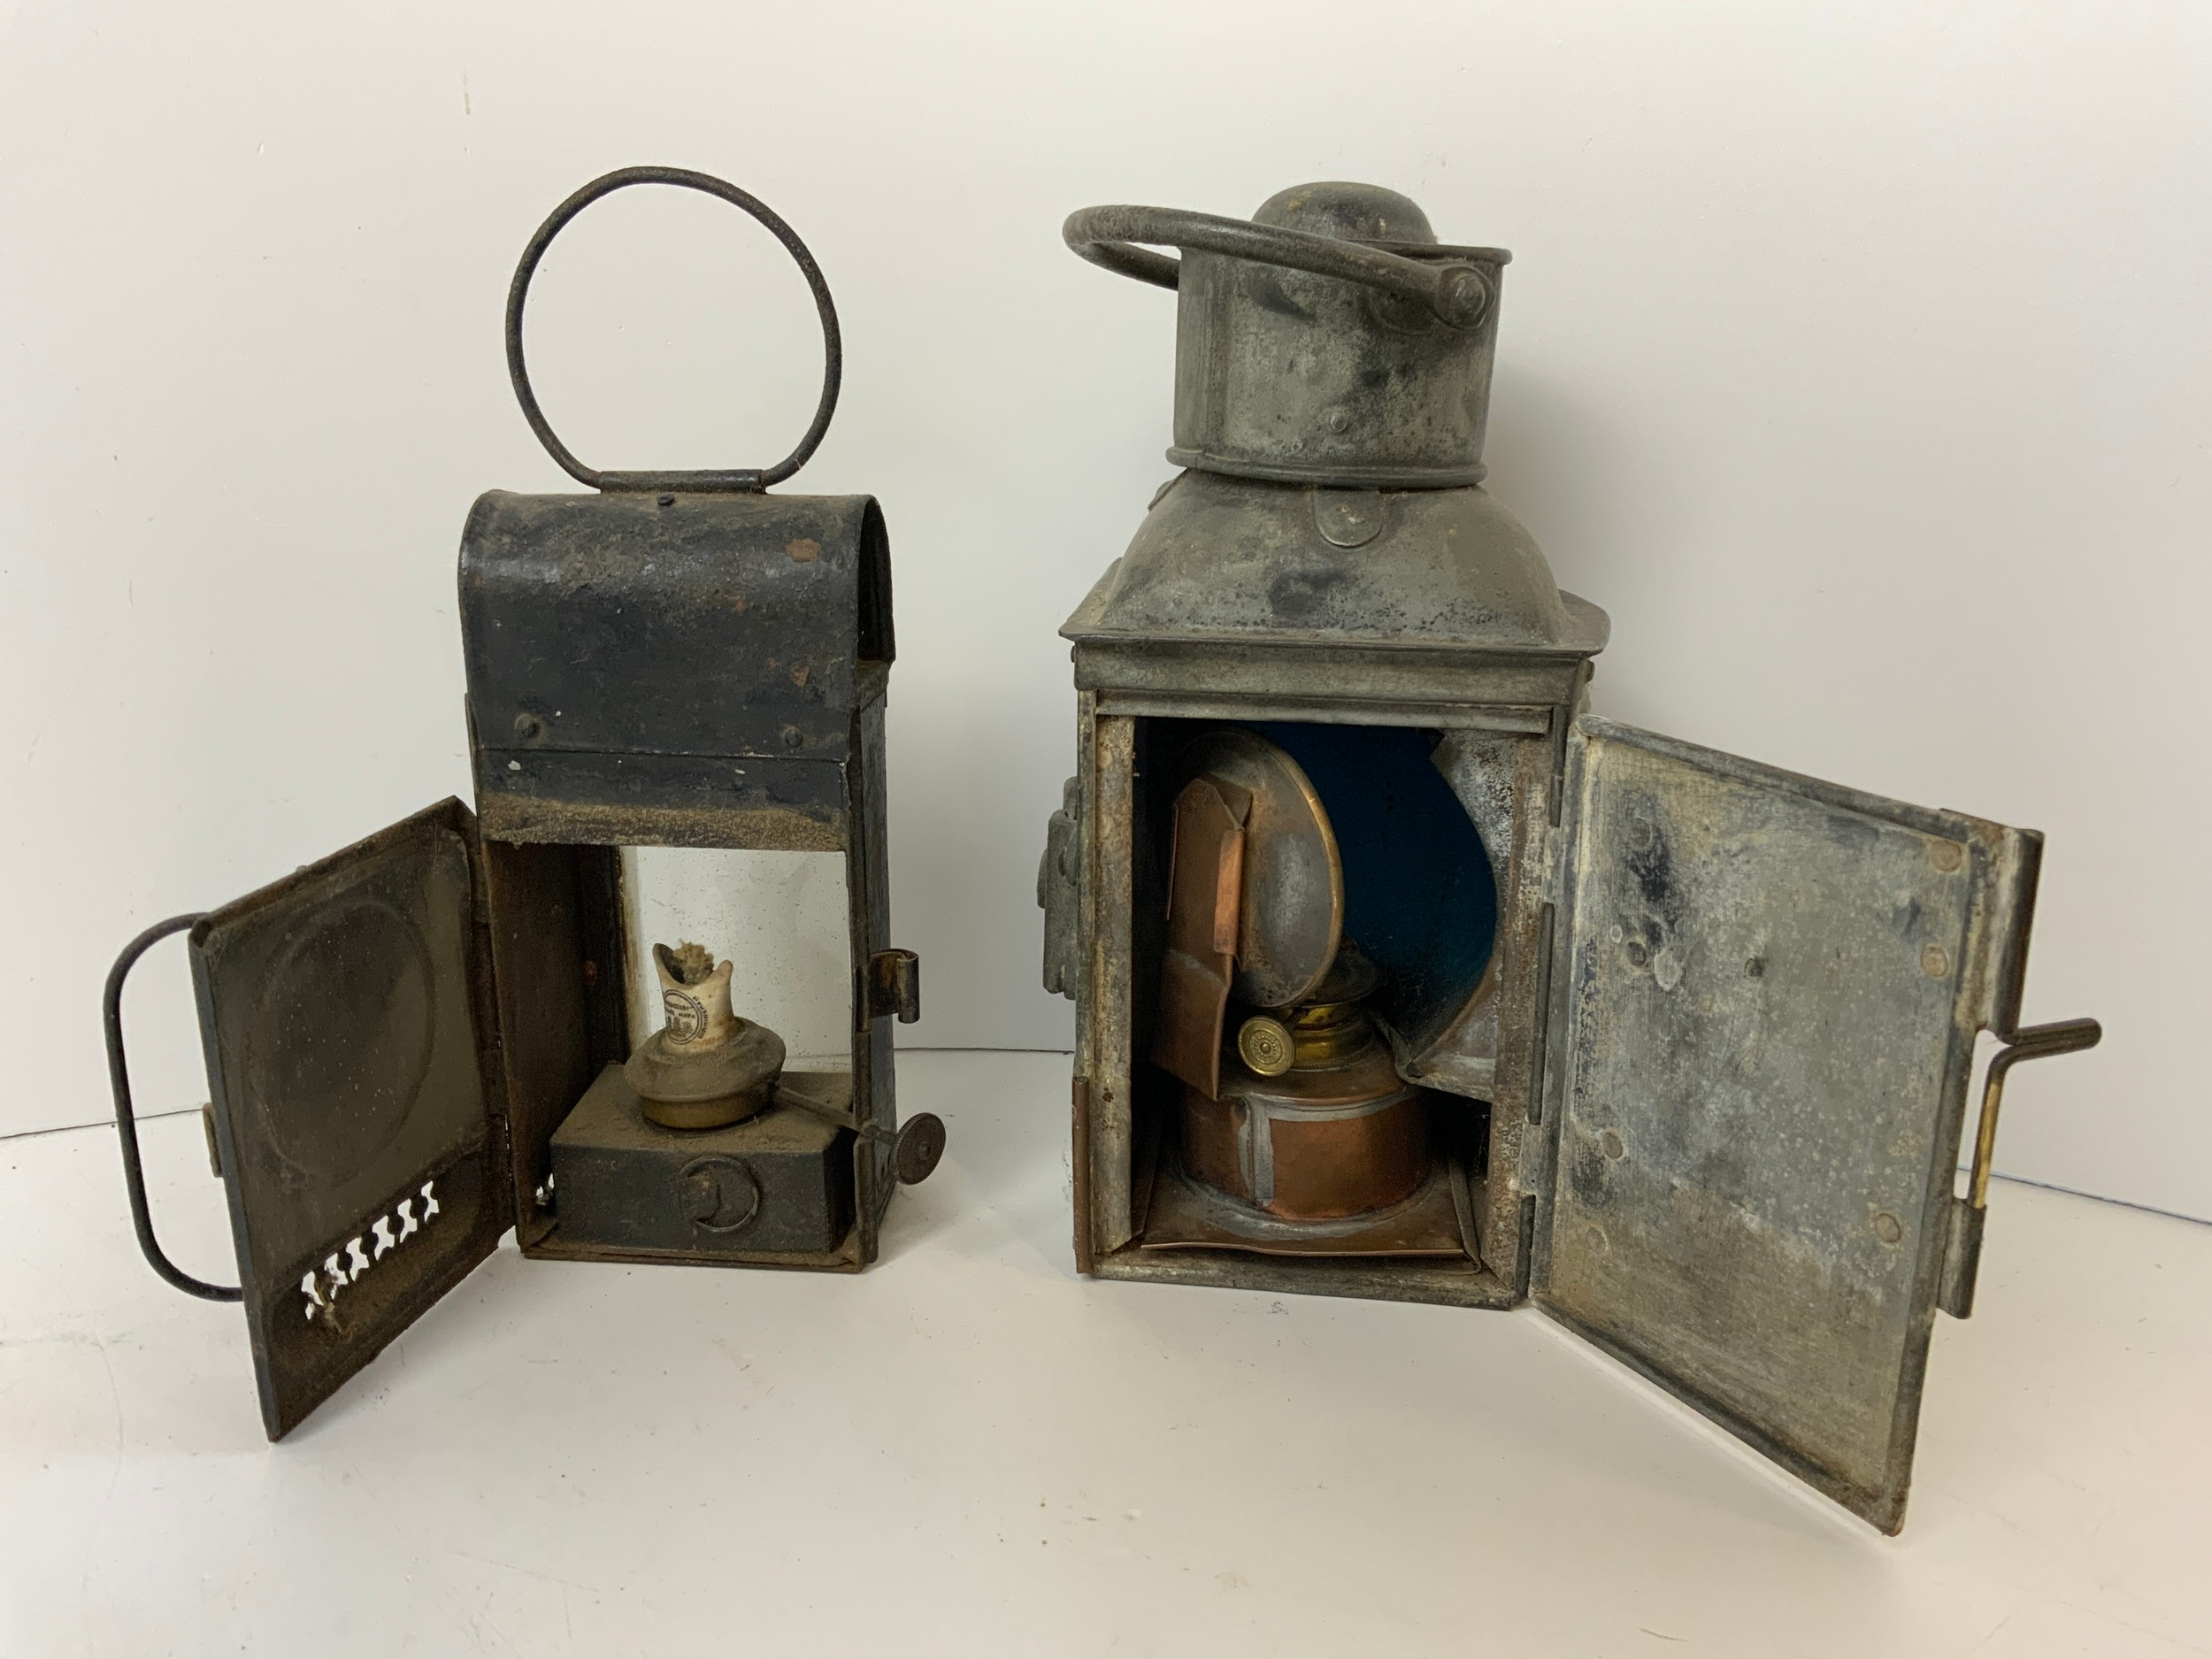 2x Oil Lanterns - One Ships - Image 2 of 3